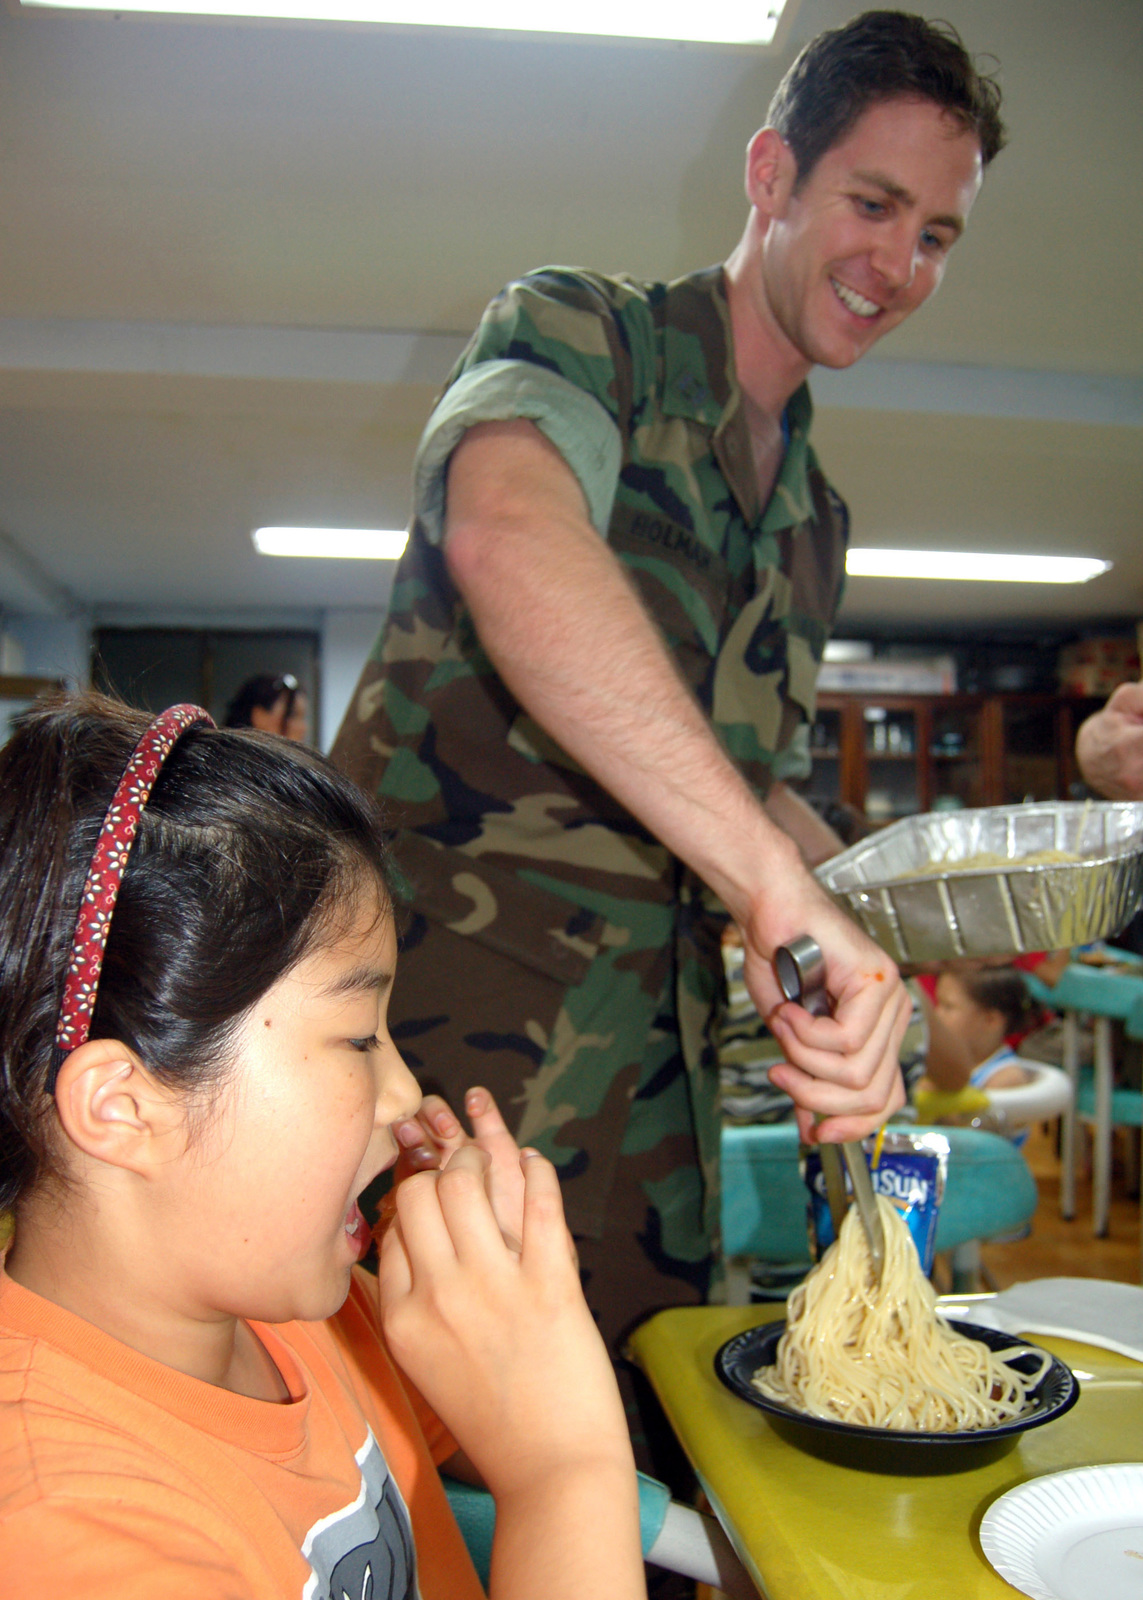 060810-N-4208W-002 (Aug. 10, 2006)US Navy (USN) LT. Sean Holman, from Commander Naval Forces Korea (CNFK), serves dinner to children at Hye-shim Won Orphanage in Seoul, Korea (KOR). The event is part of a monthly birthday party that CNFK Sailors host for the orphanage.U.S. Navy official photo by Mass Communication SPECIALIST 1ST Class Lisa Wassilieff (RELEASED)